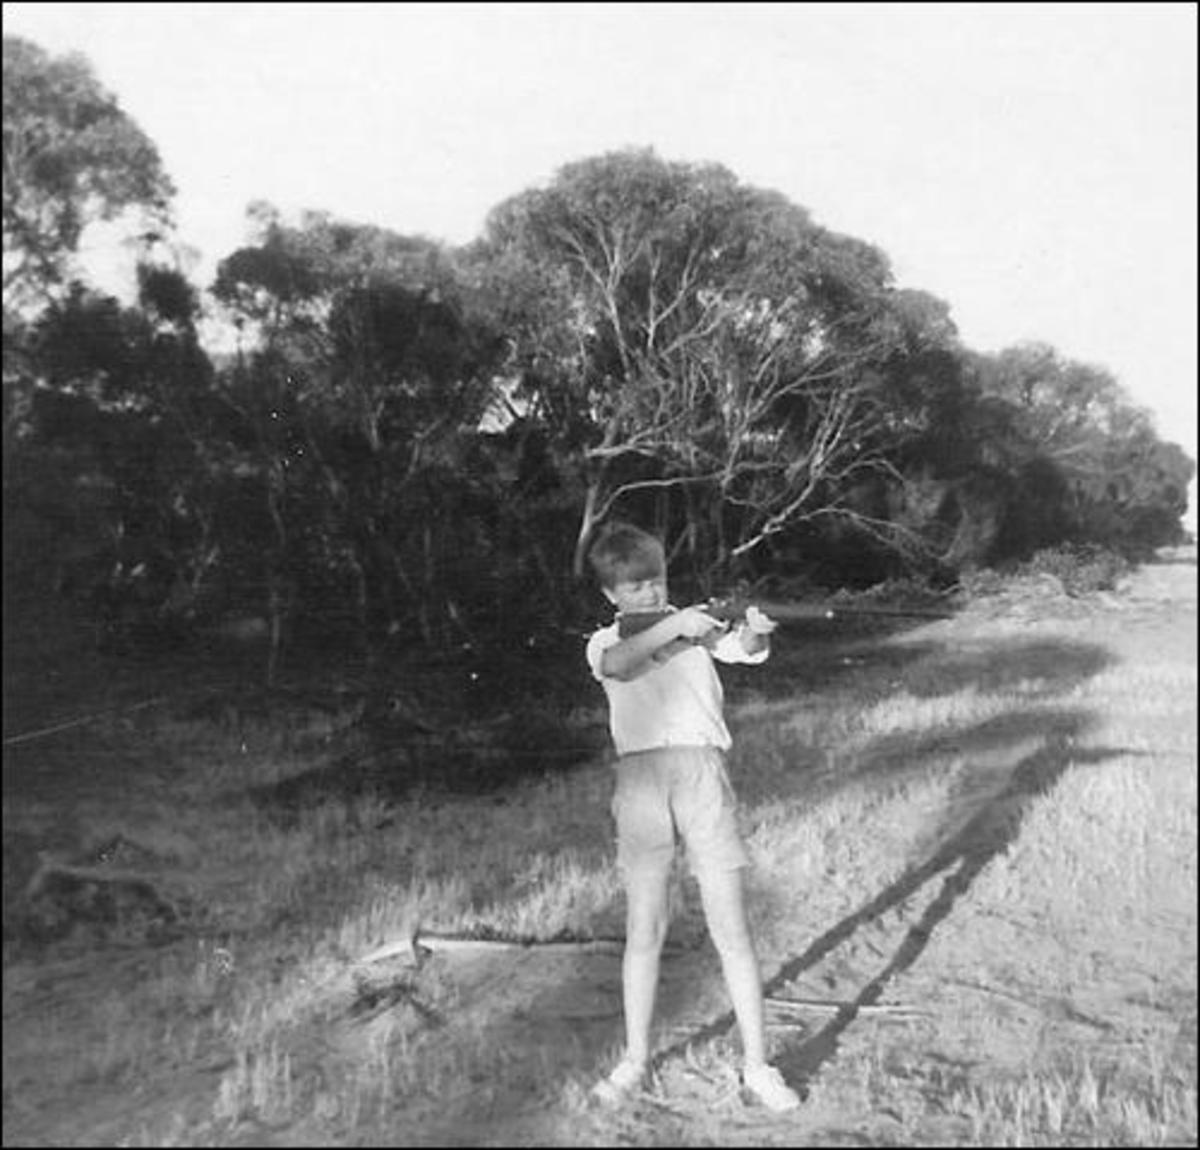 My brother in the Australian outback in 1967